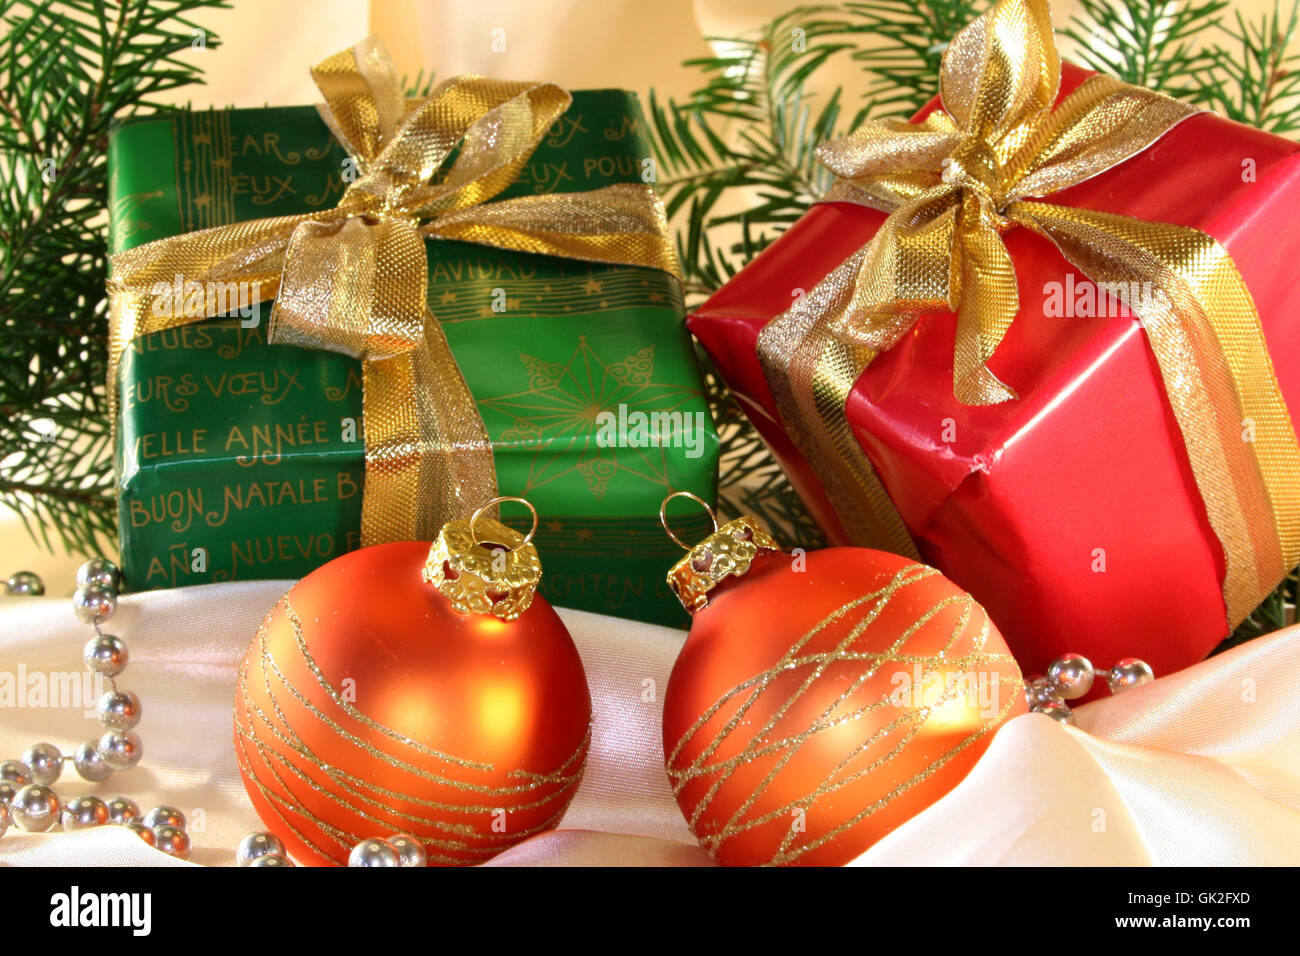 advent gift donate - Stock Image